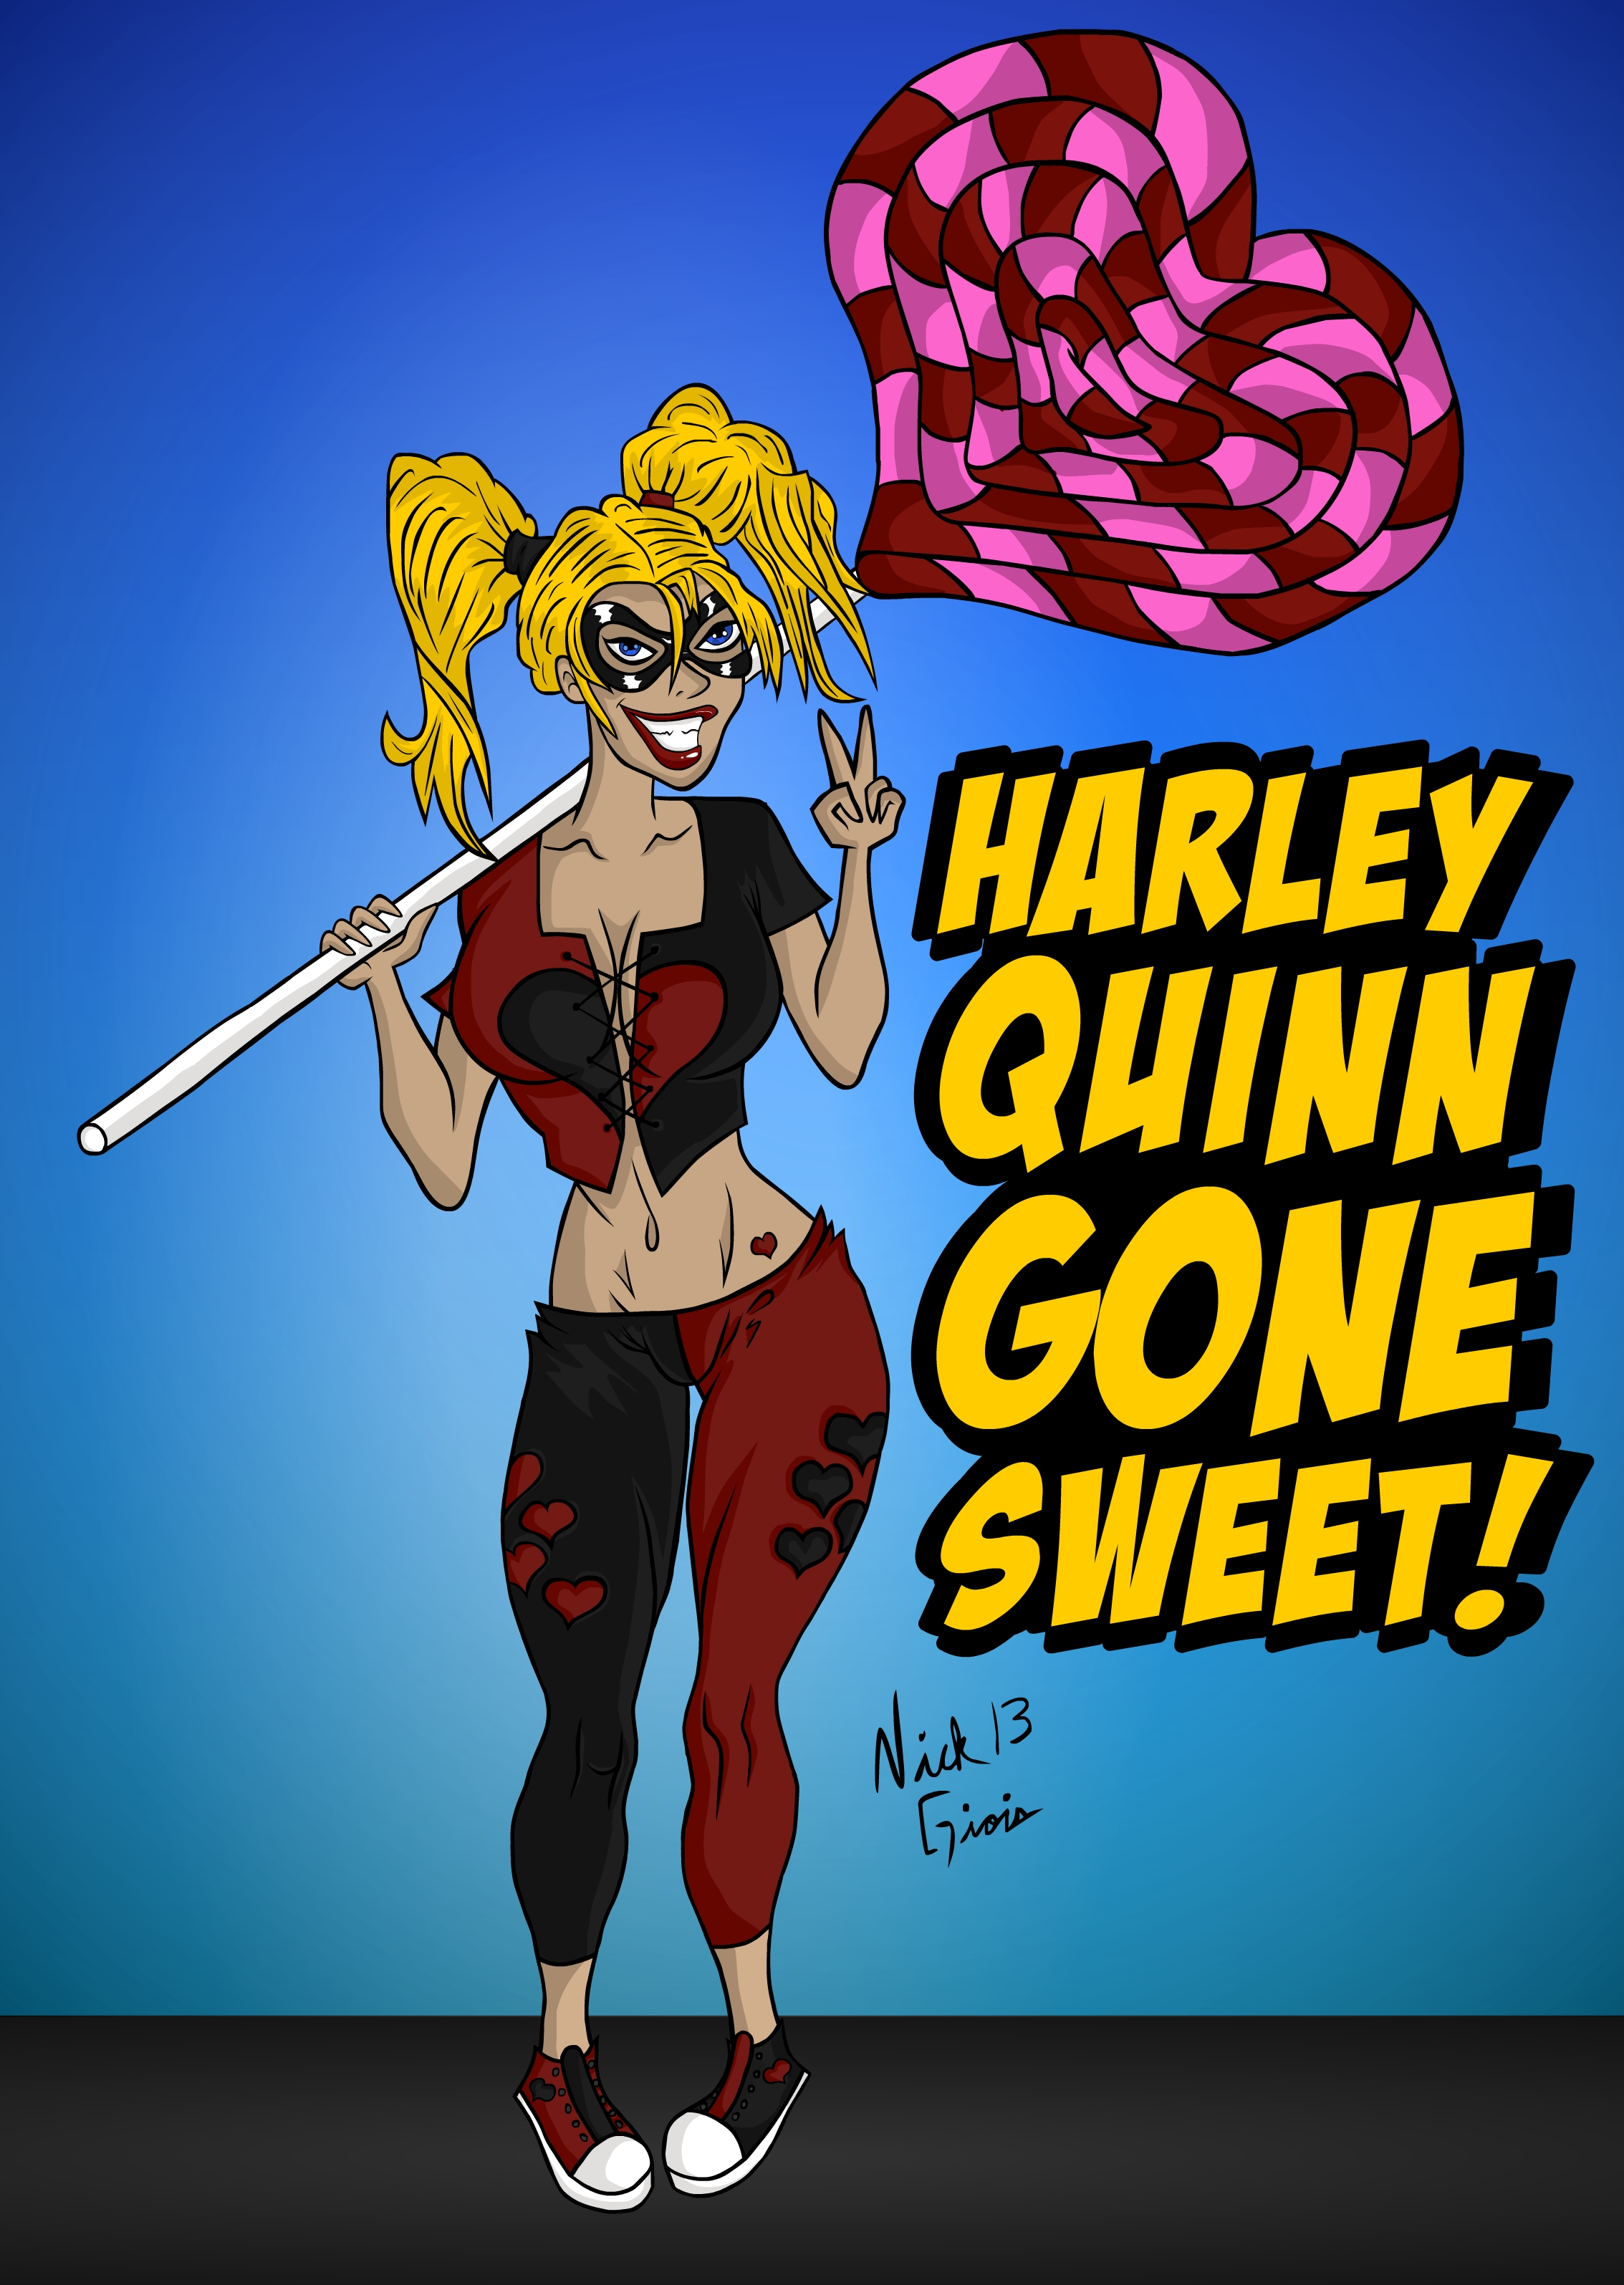 Harley Quinn Gone Sweet!